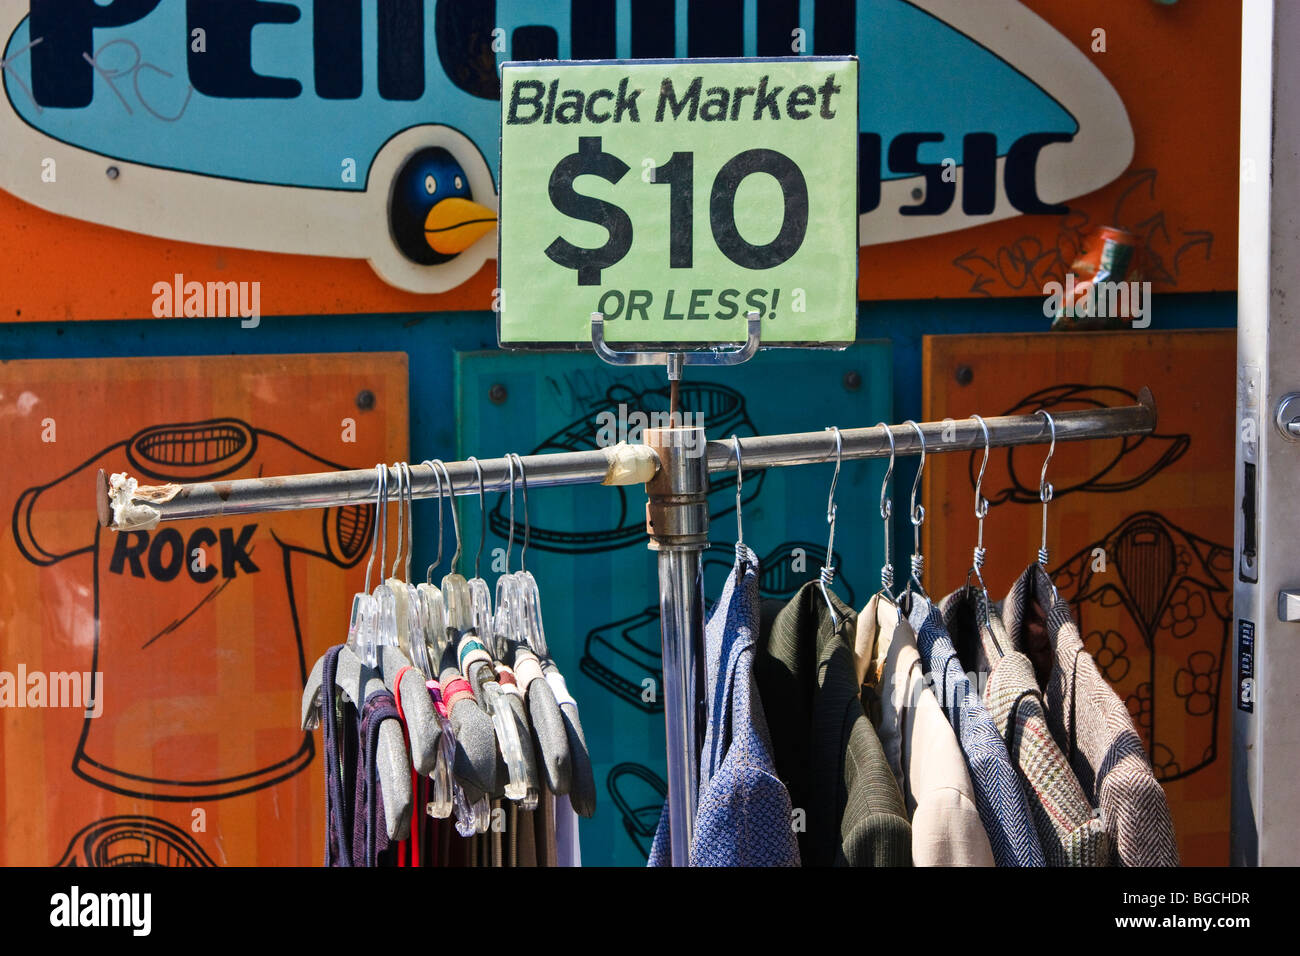 Clothes on a rack with $10 or less price tag. 'Black Market' shop in Toronto, Canada. - Stock Image